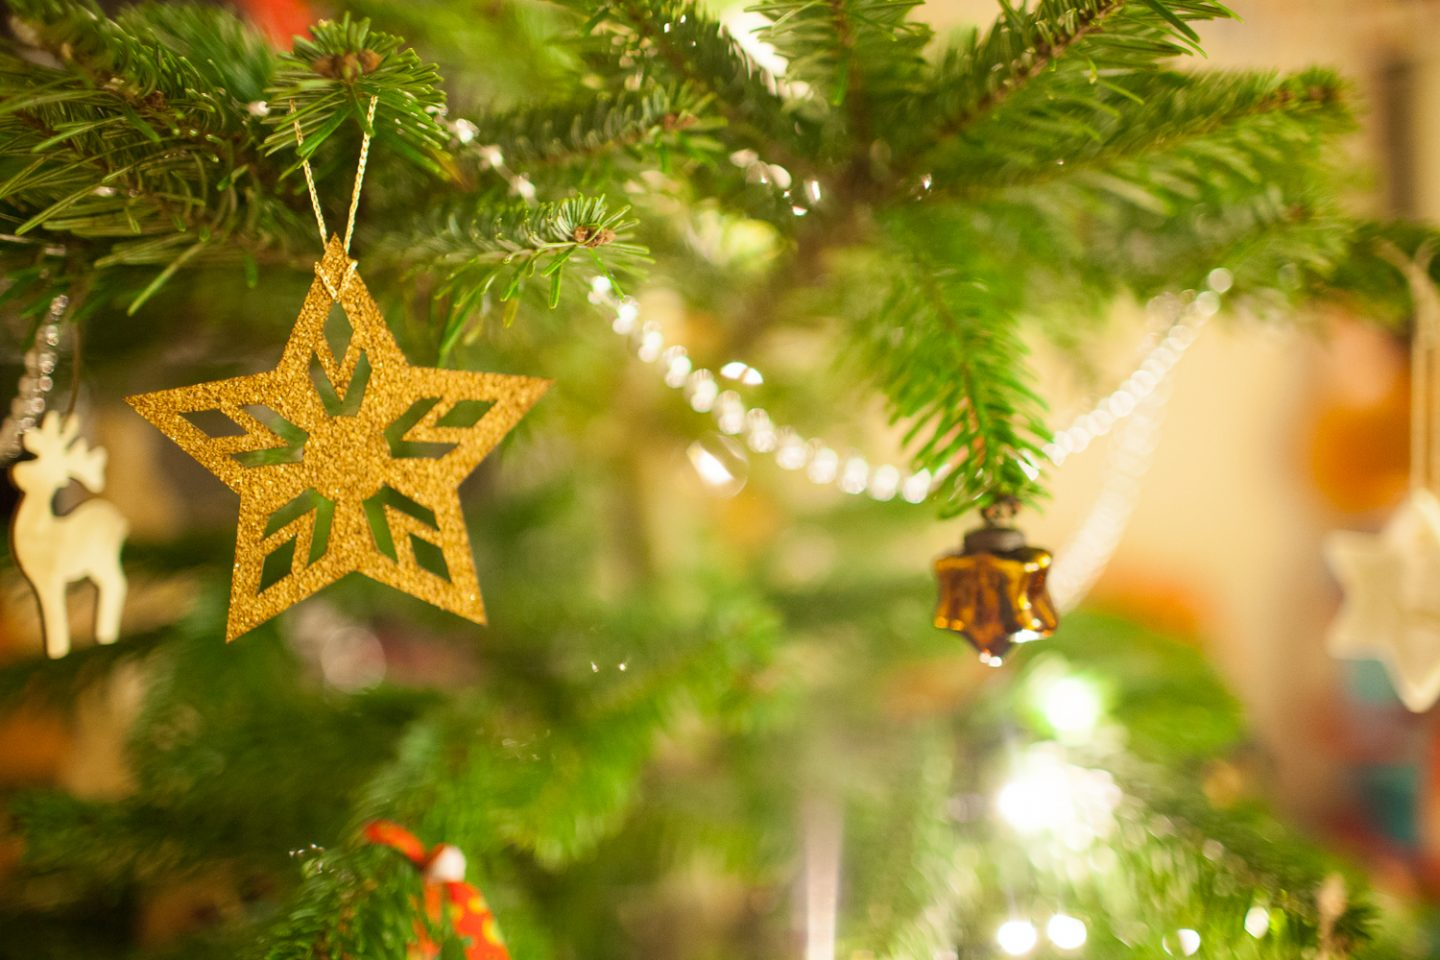 Planning ahead for a greener Christmas